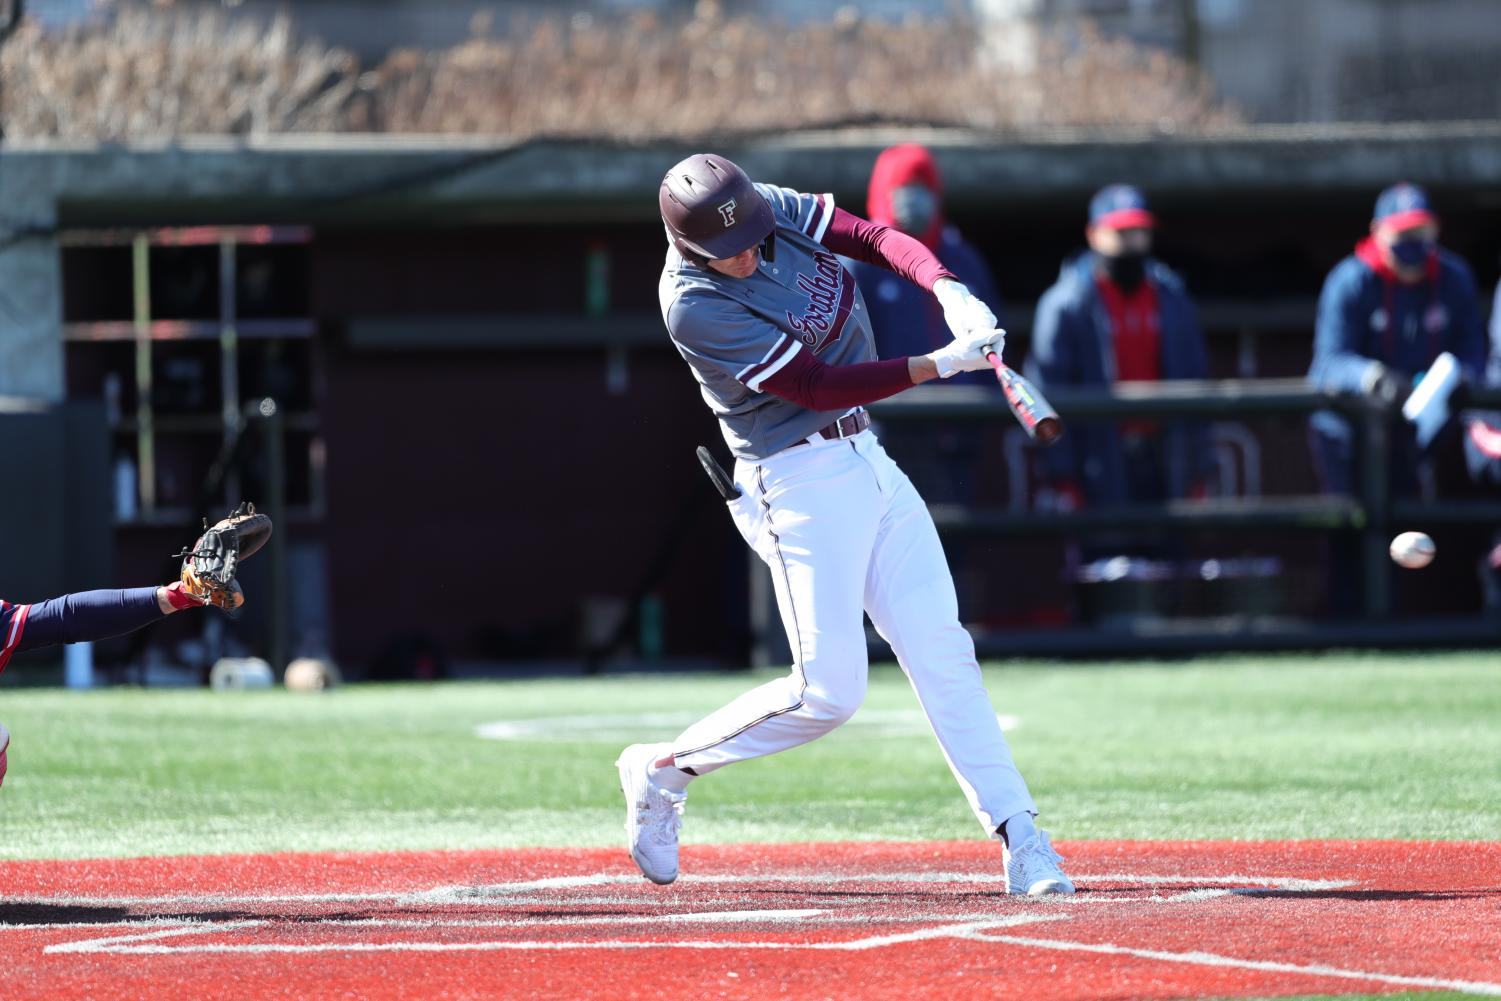 jason coules swinging a bat in the njit game